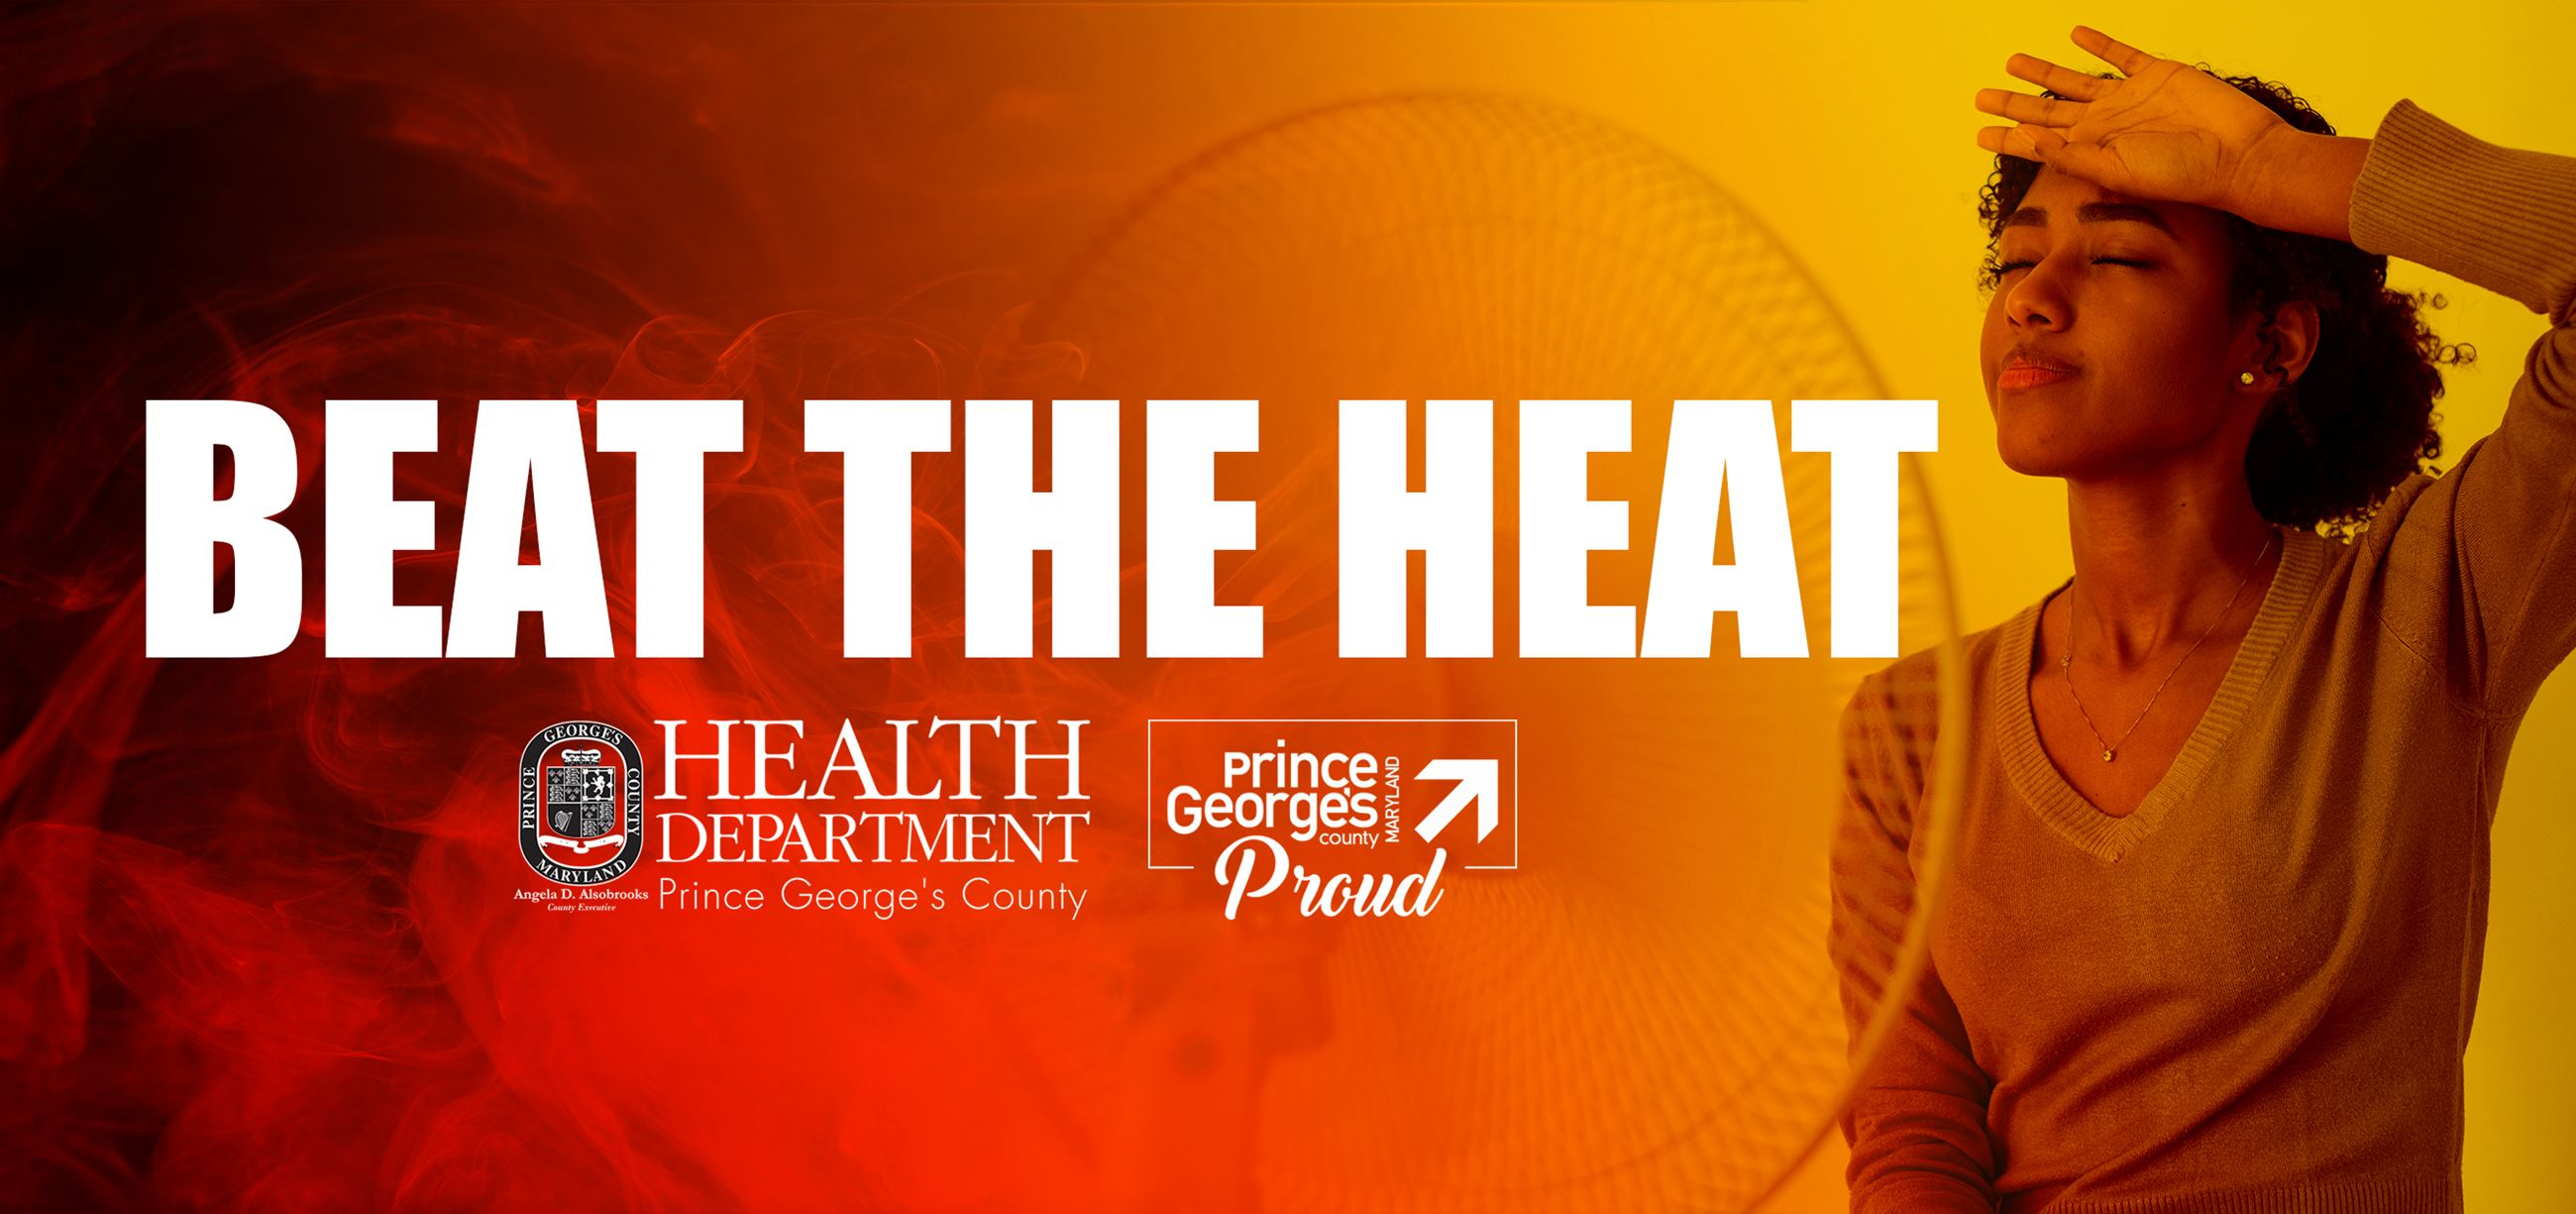 Health Department Prince Georges County Md